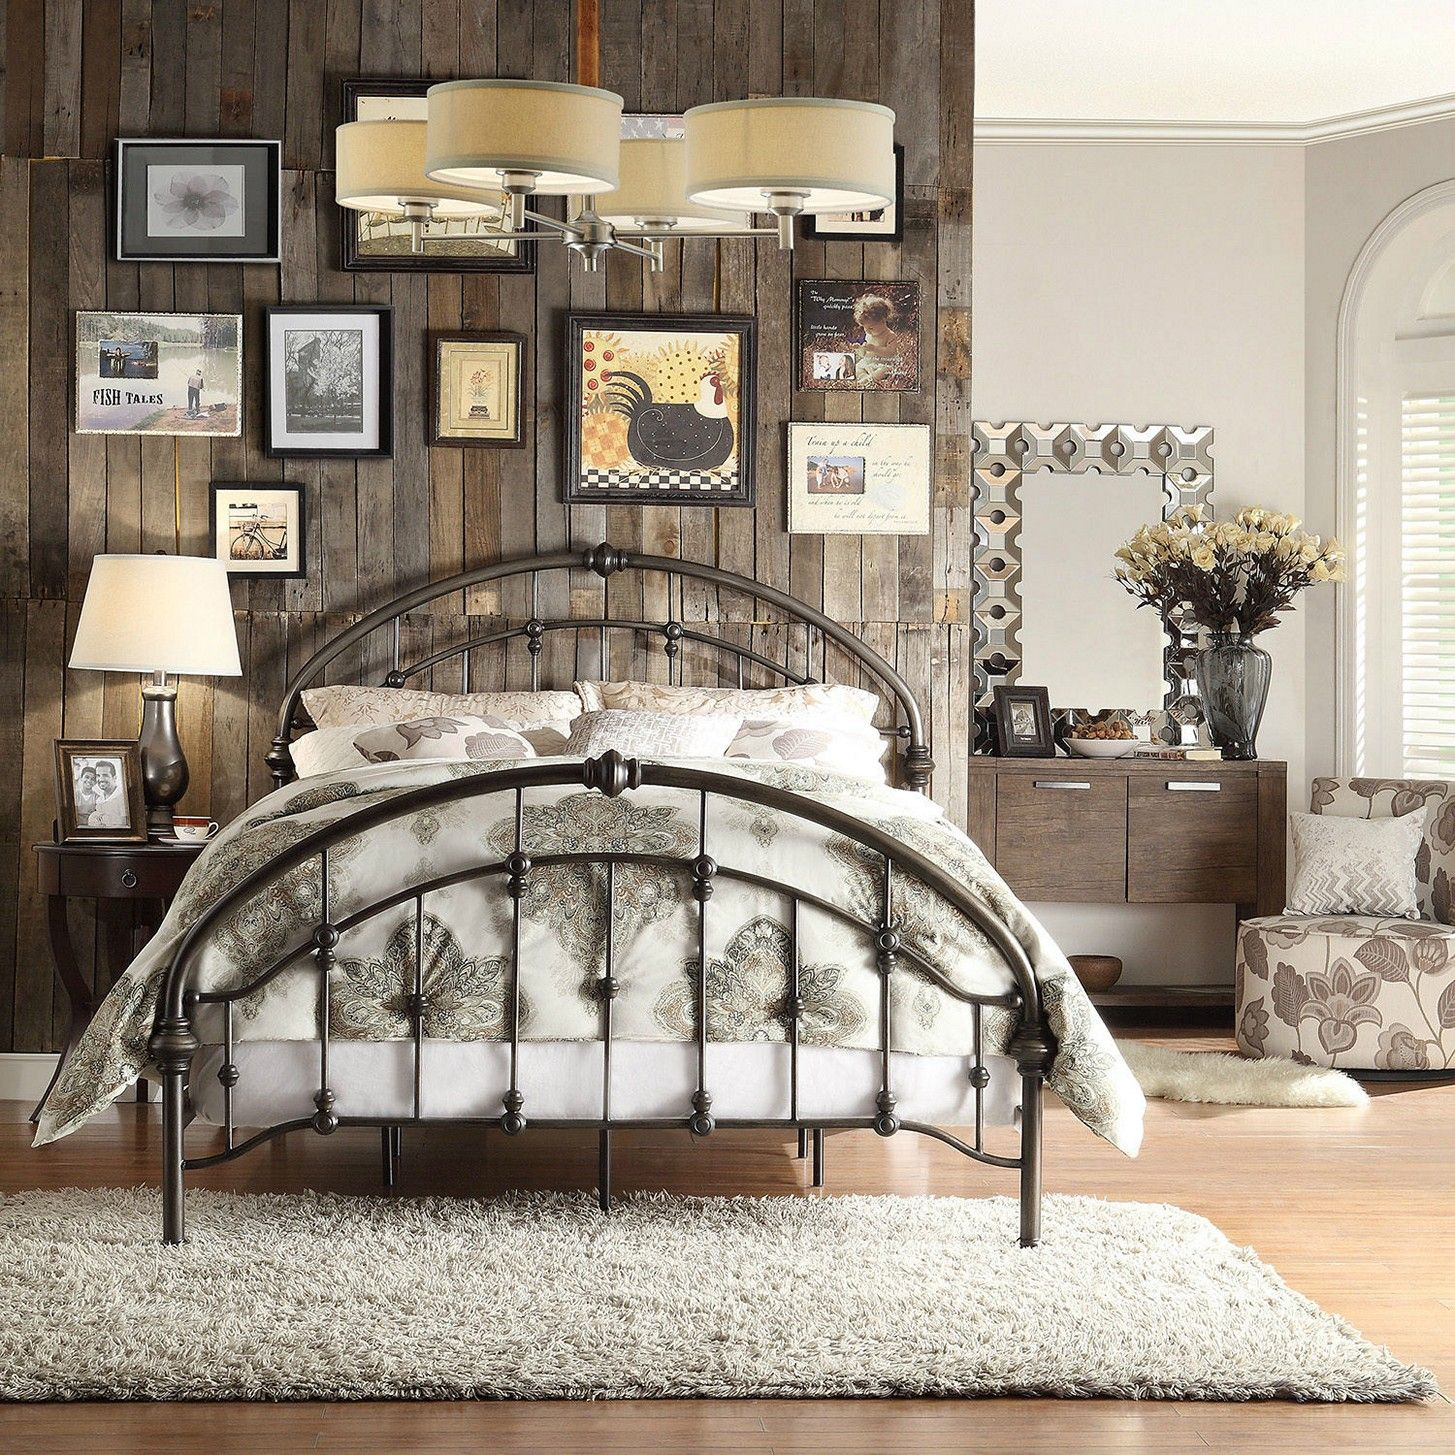 vintage looking bedroom furniture. Estilo Vintage Ideas Dormitorio Decoración Looking Bedroom Furniture T